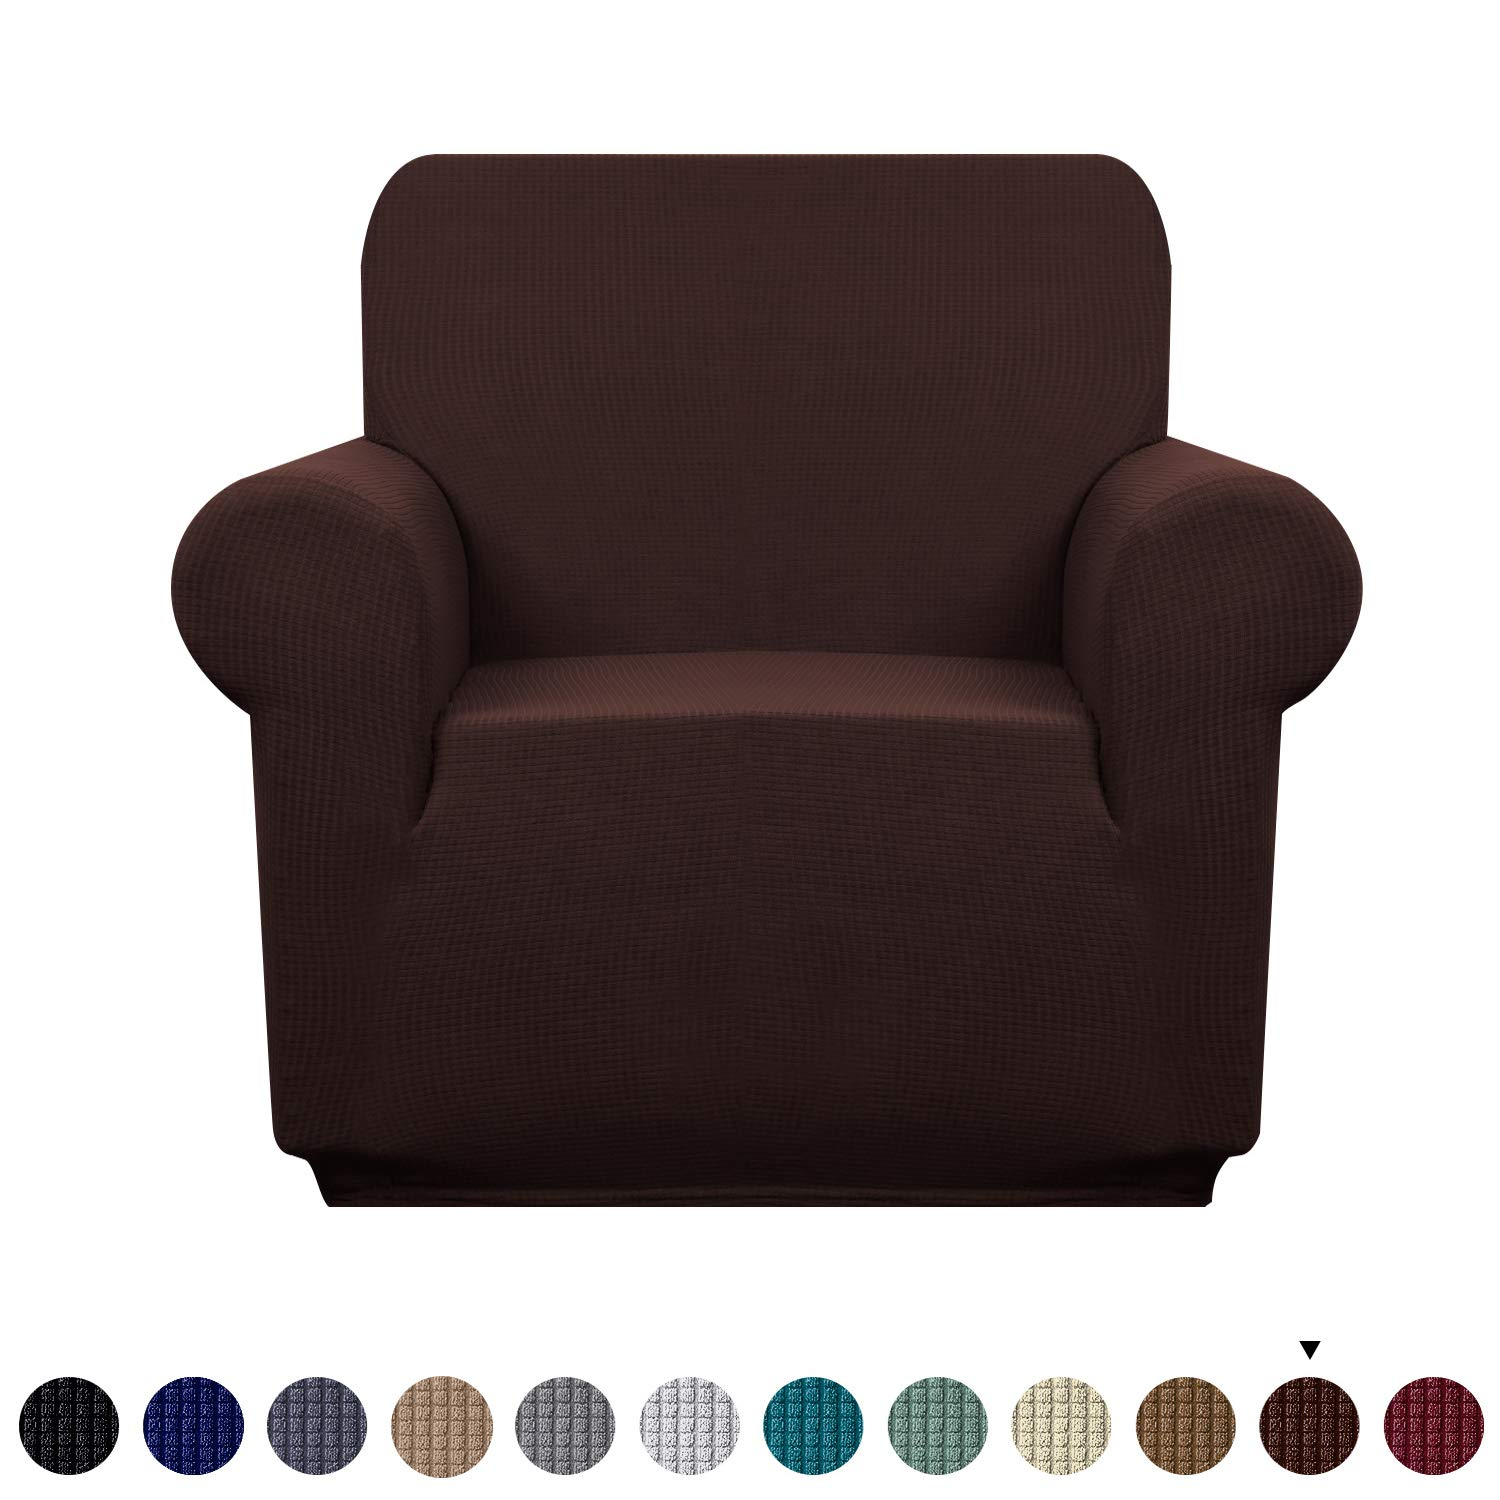 Granbest Premium Water Repellent Sofa Cover High Stretch Couch Slipcover Super Soft Fabric Couch Cover (Chocolate, Chair)